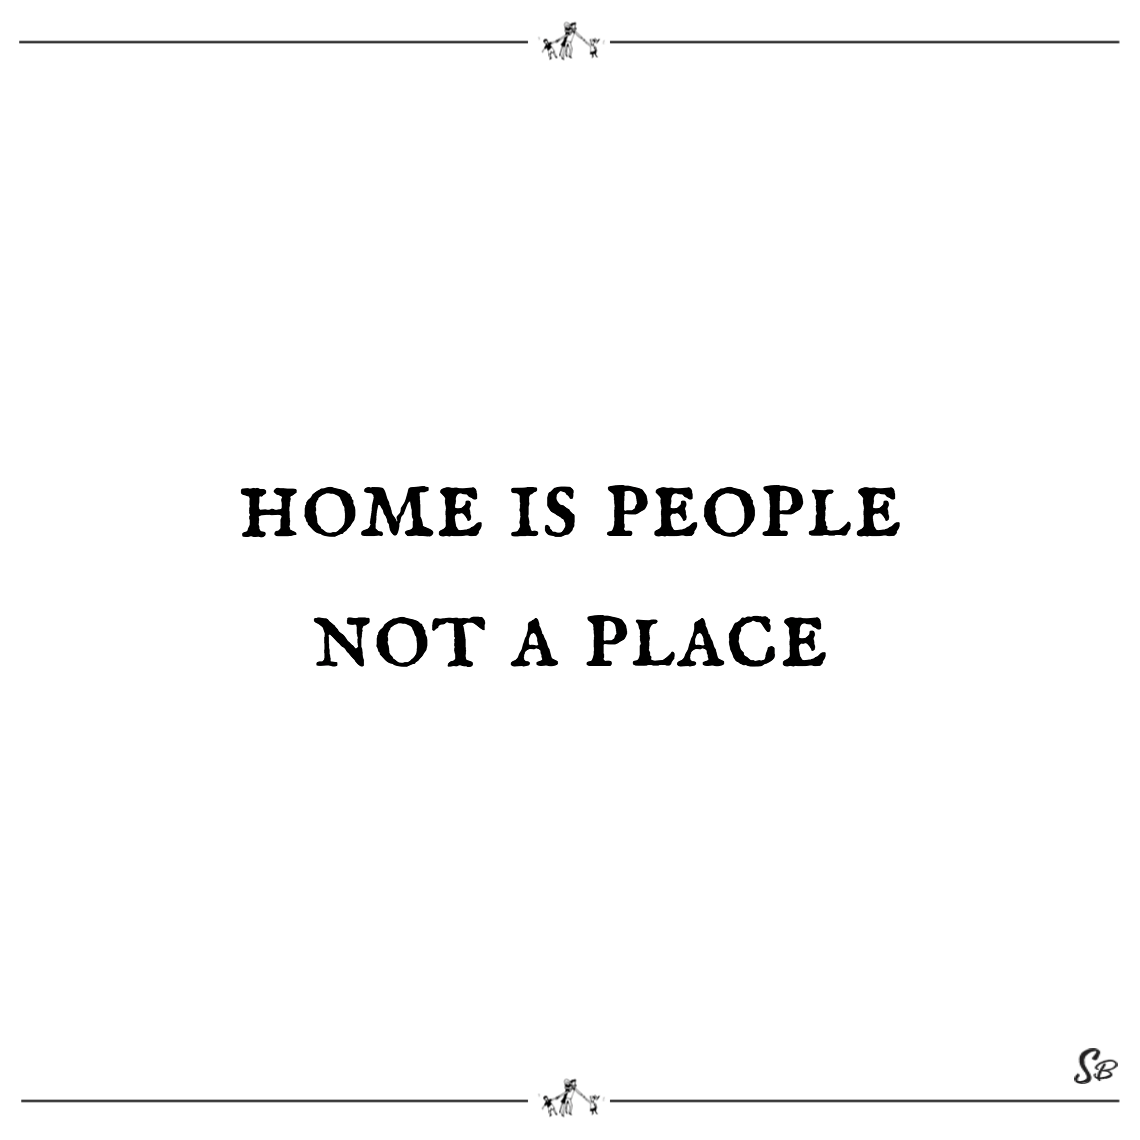 Home is people not a place